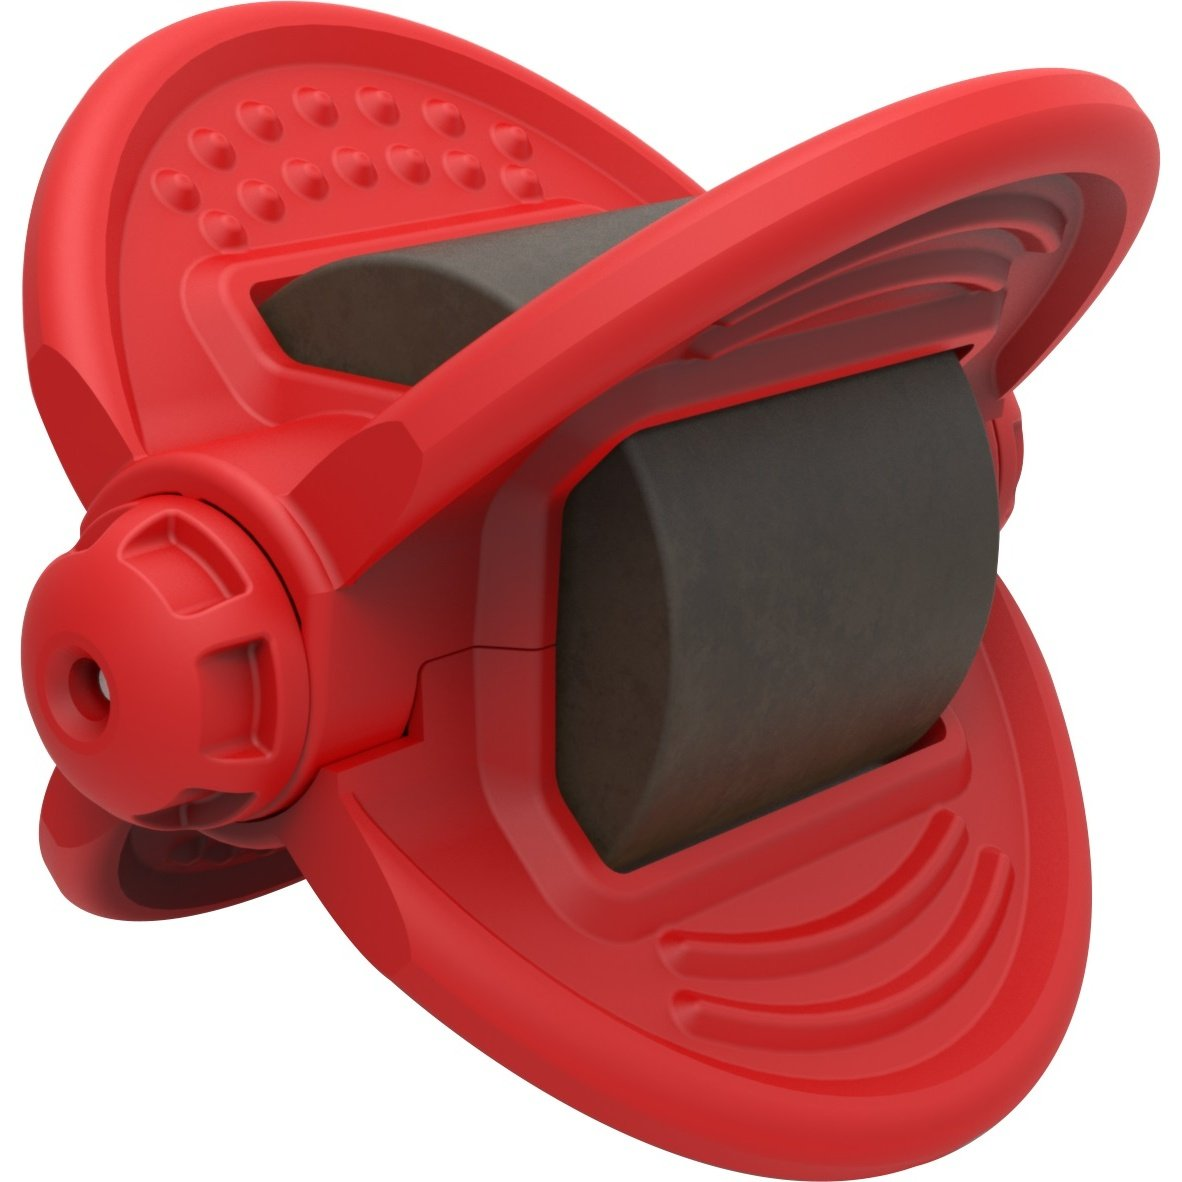 Bizzy Bites Equine Teether Toy (One Size) (Red)